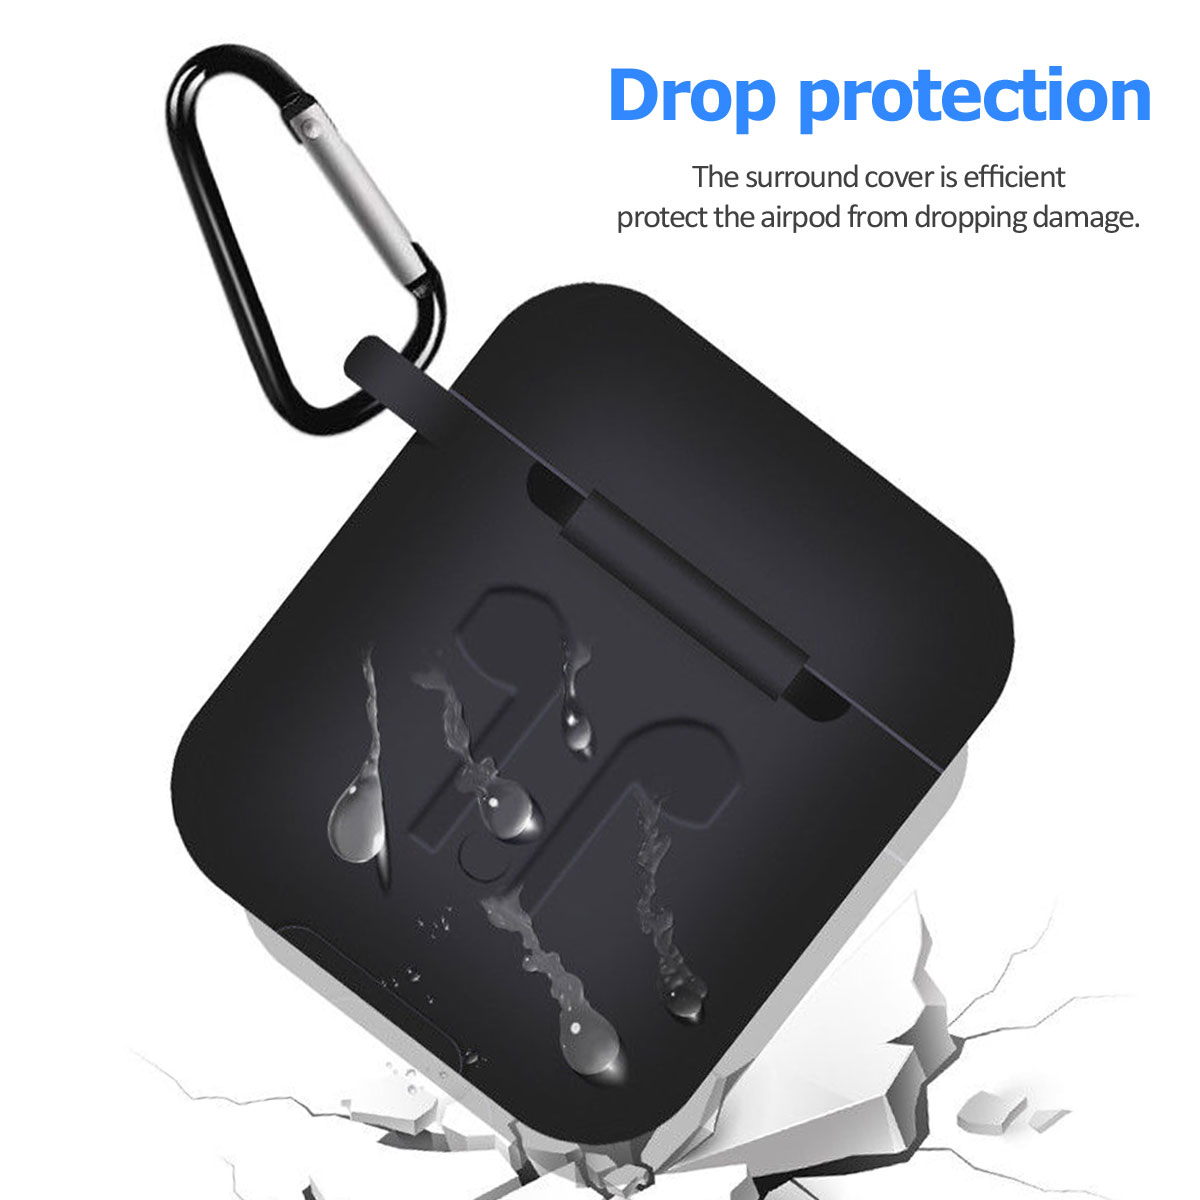 Silicone-Ruggged-Case-Cover-Earbuds-For-Apple-AirPods-2nd-Gen-Accessories-2019 thumbnail 14